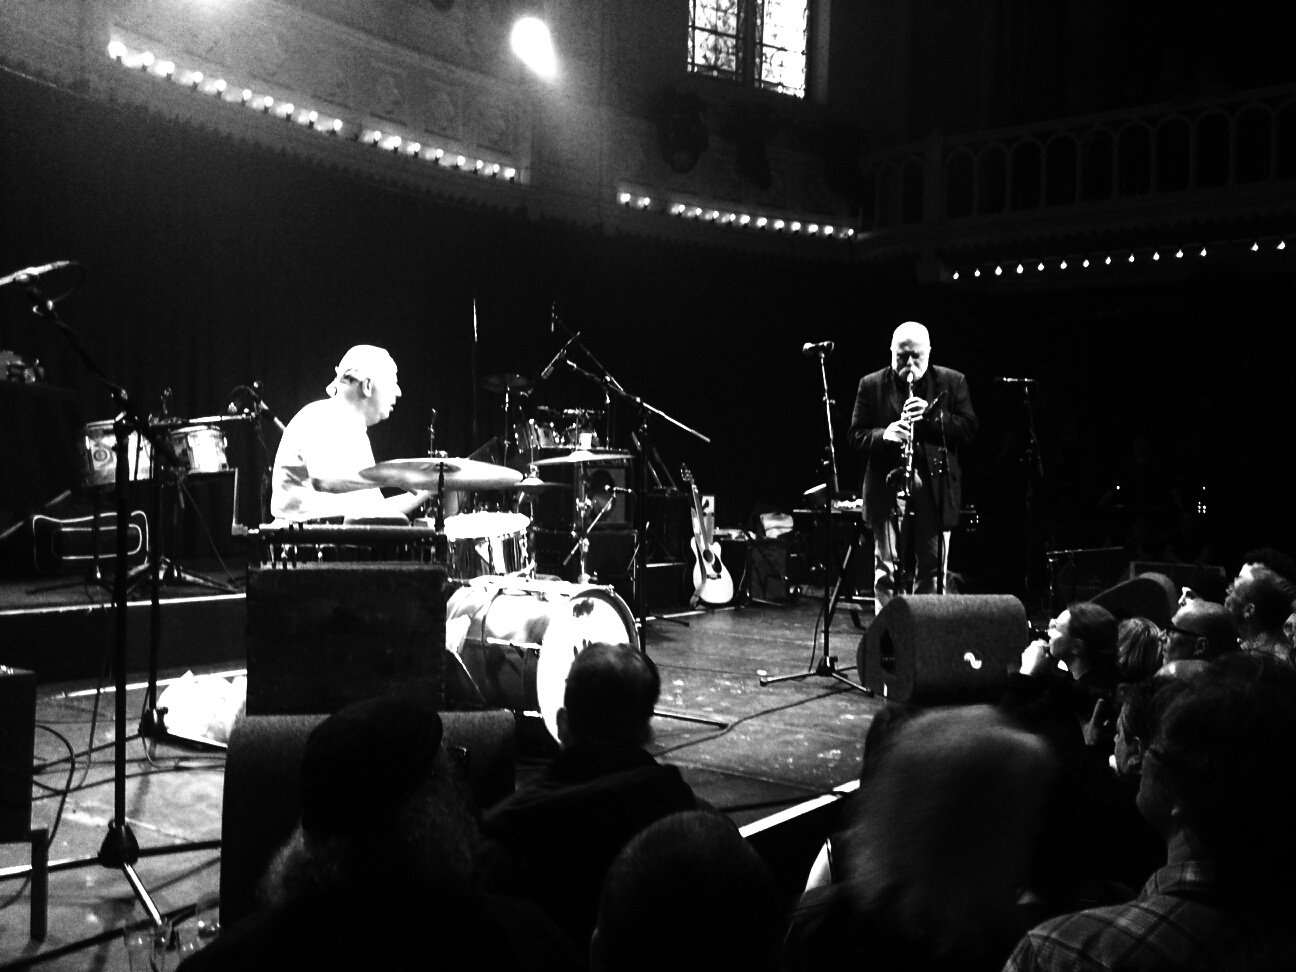 Han Bennink and Peter Brotzmann perform at The Ex festival, Paradiso, Amsterdam